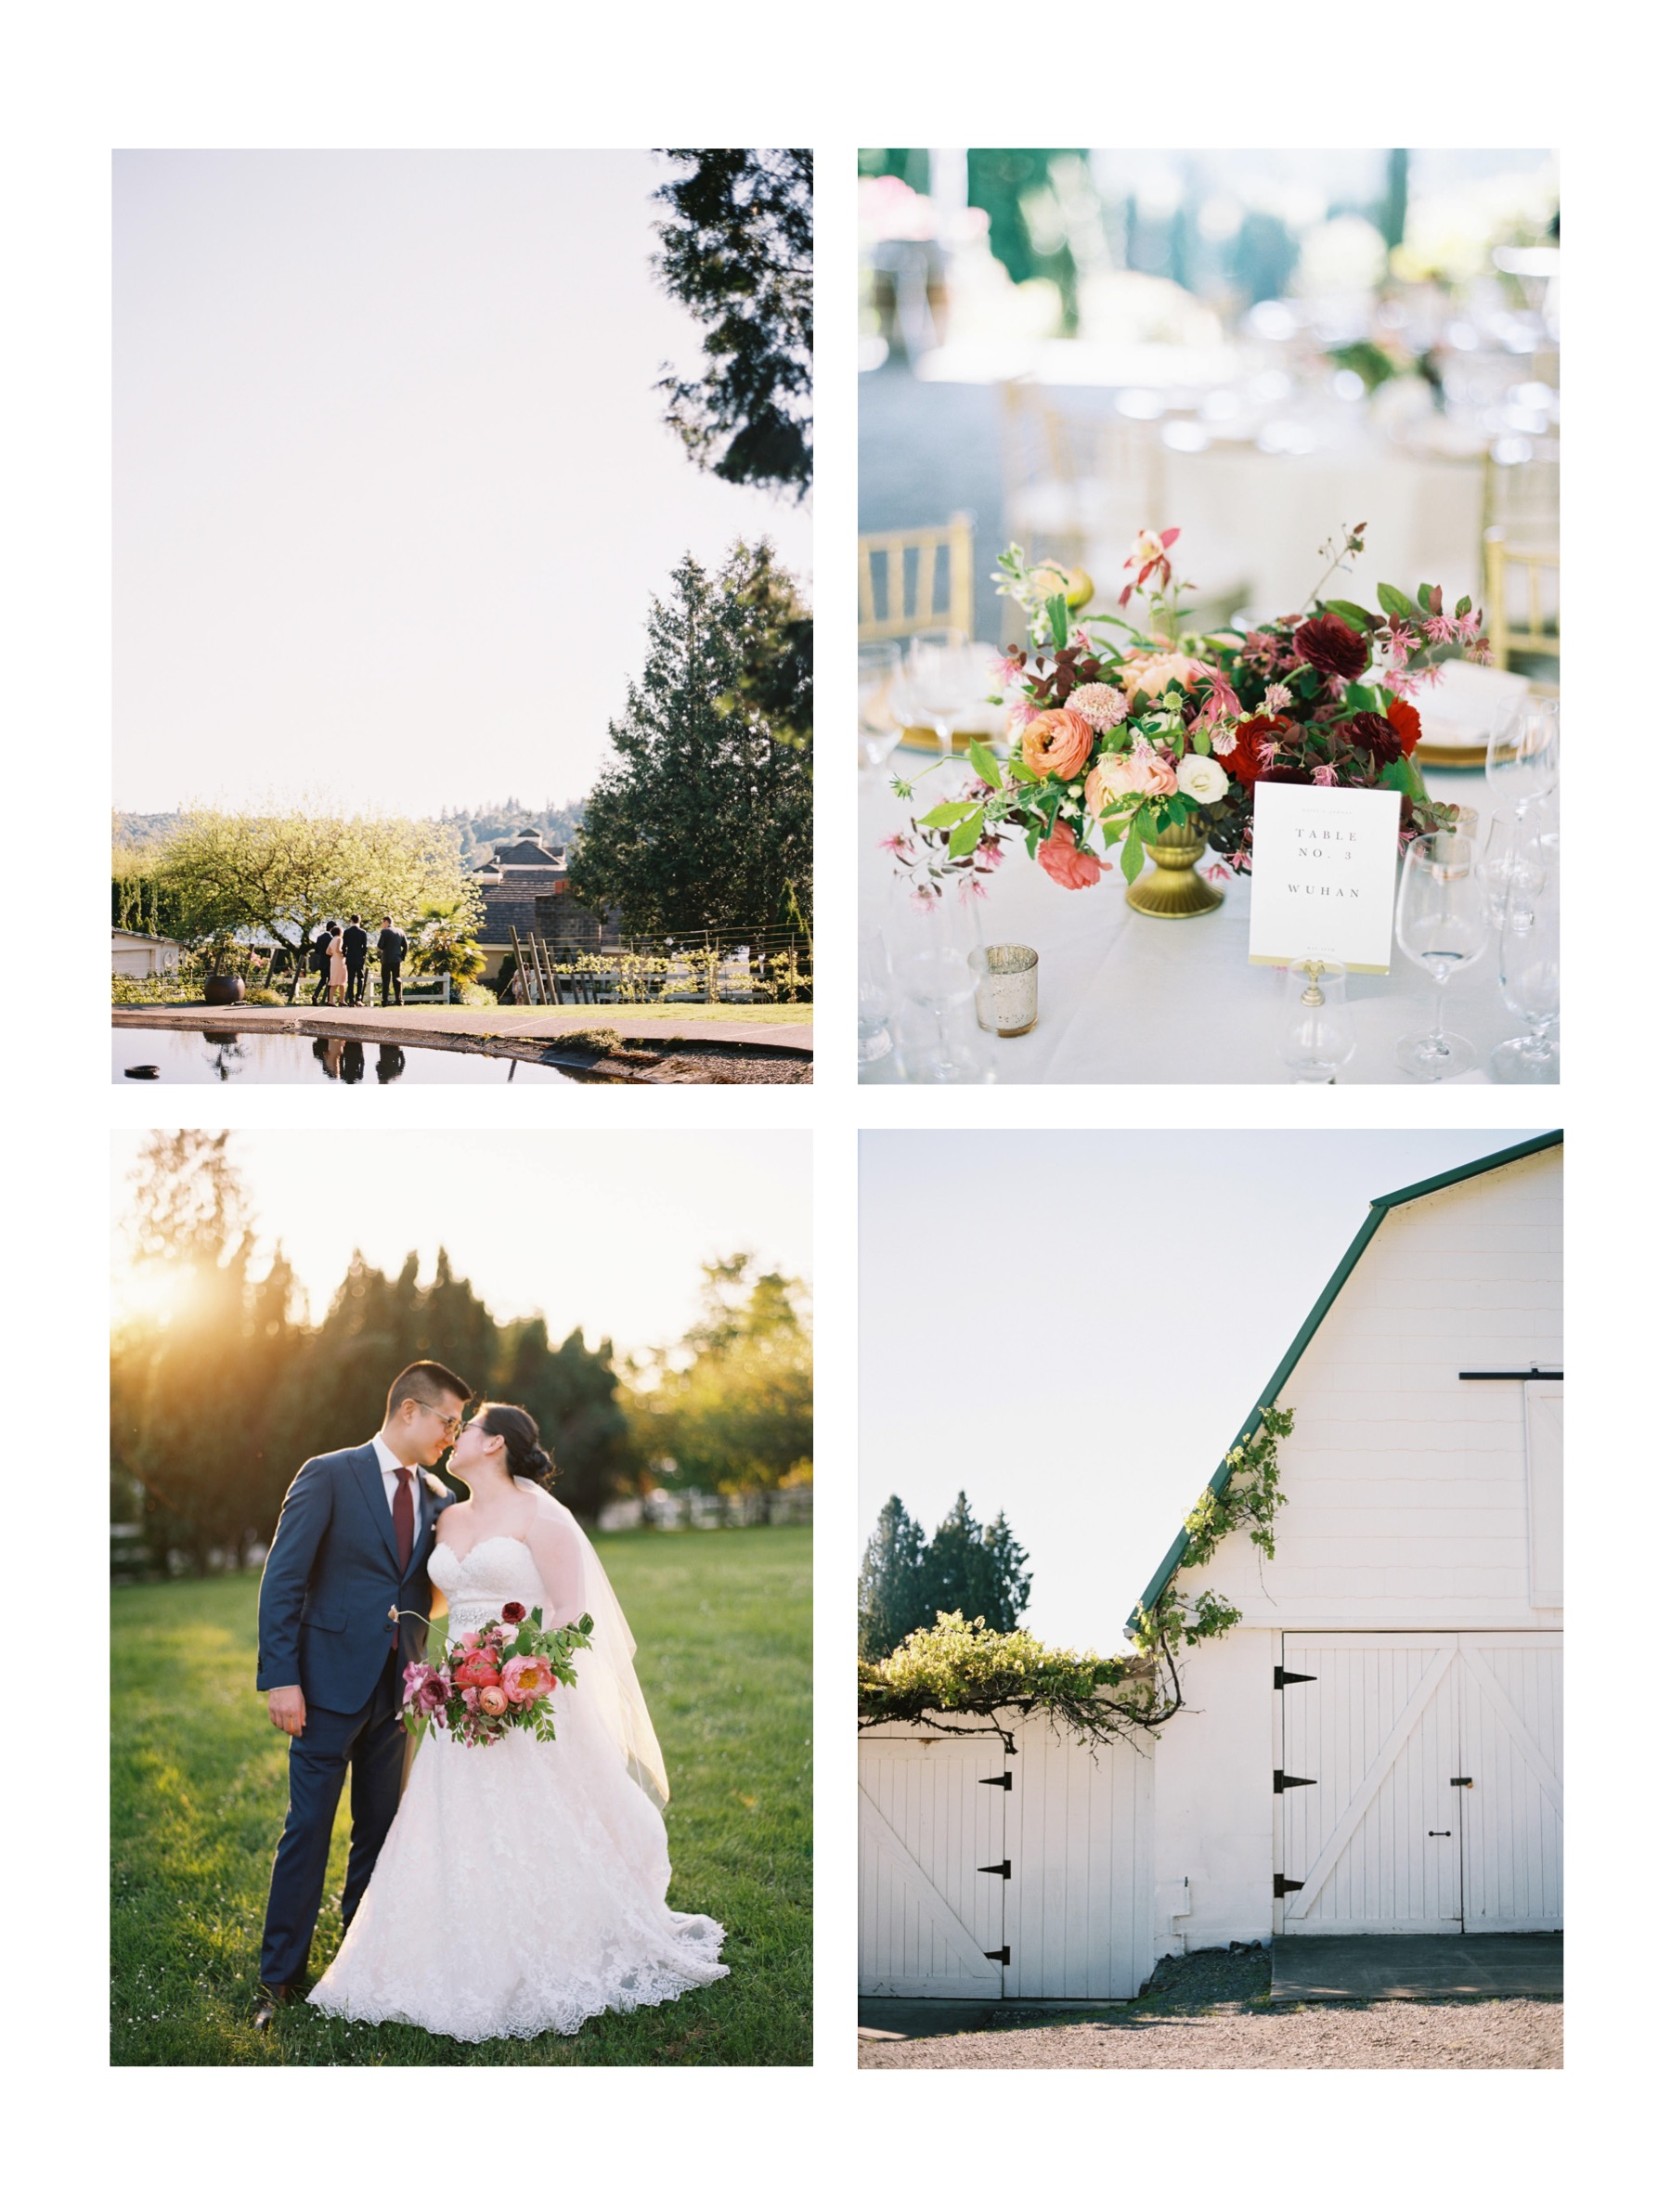 Our favorite elegant Seattle Wedding Venues, and a photographer's perspective on setting | Chateau Lil, romantic winery wedding venue in Woodinville, WA